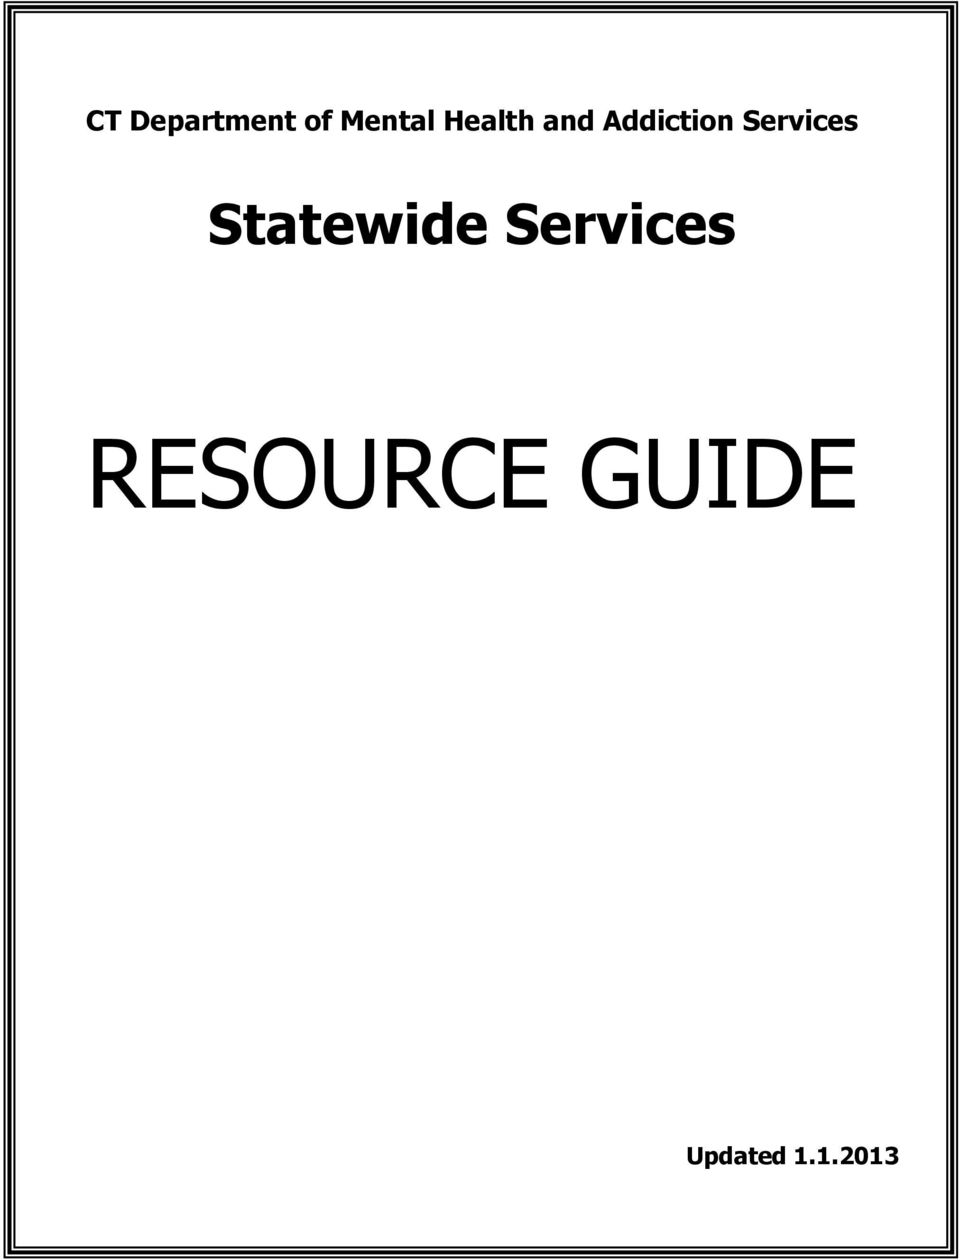 Services Statewide